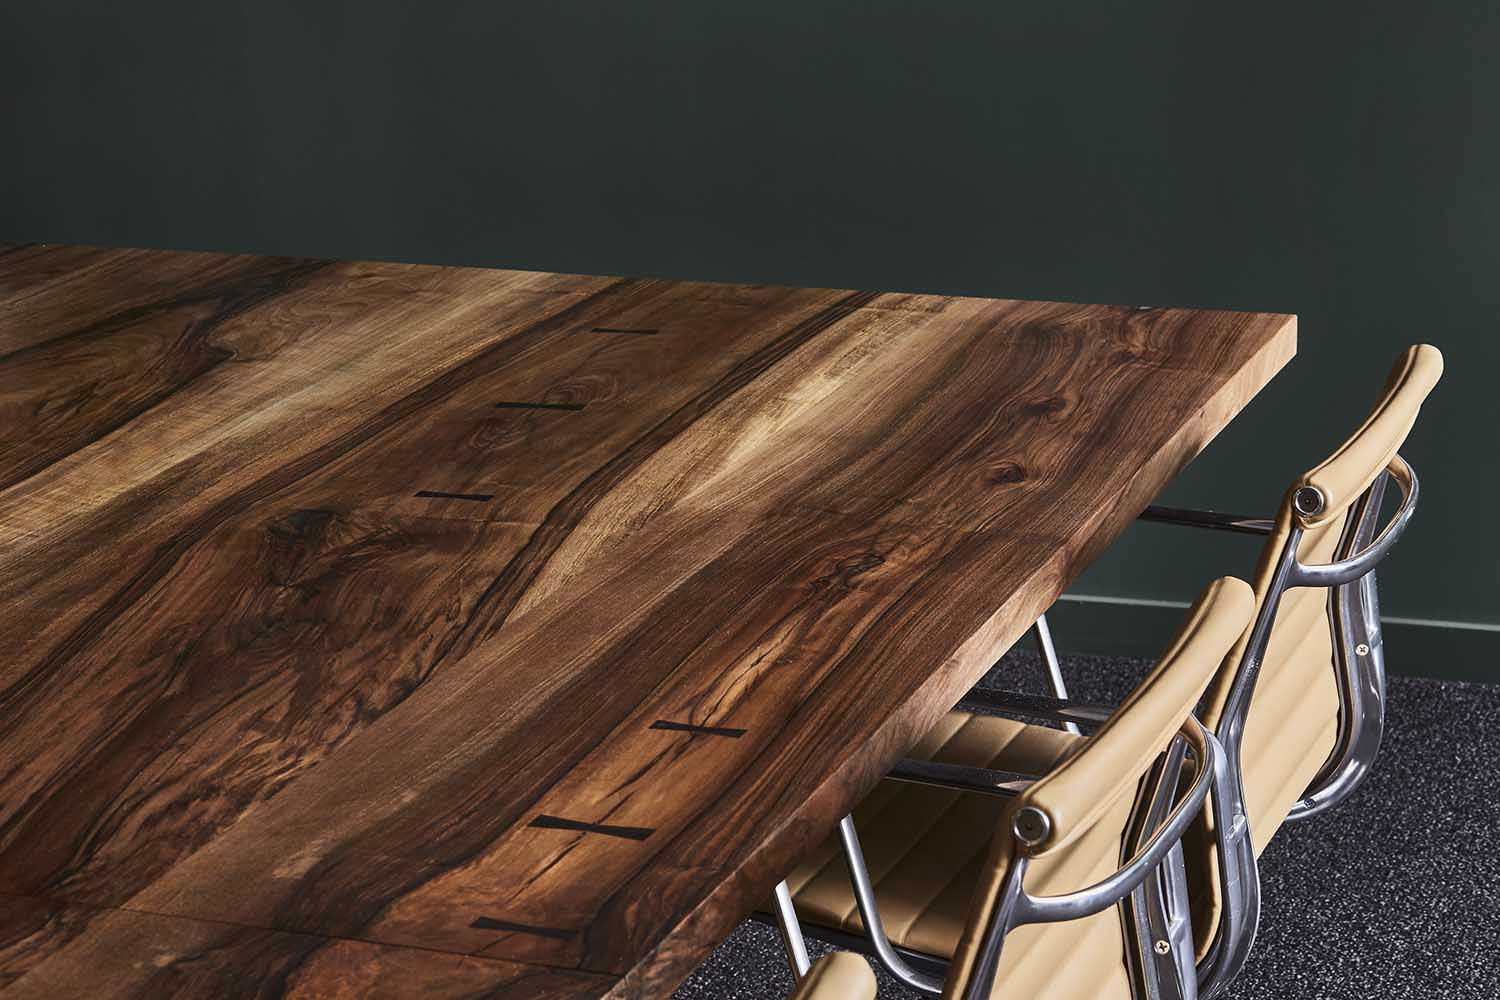 Victoria Conference Table made with European Walnut